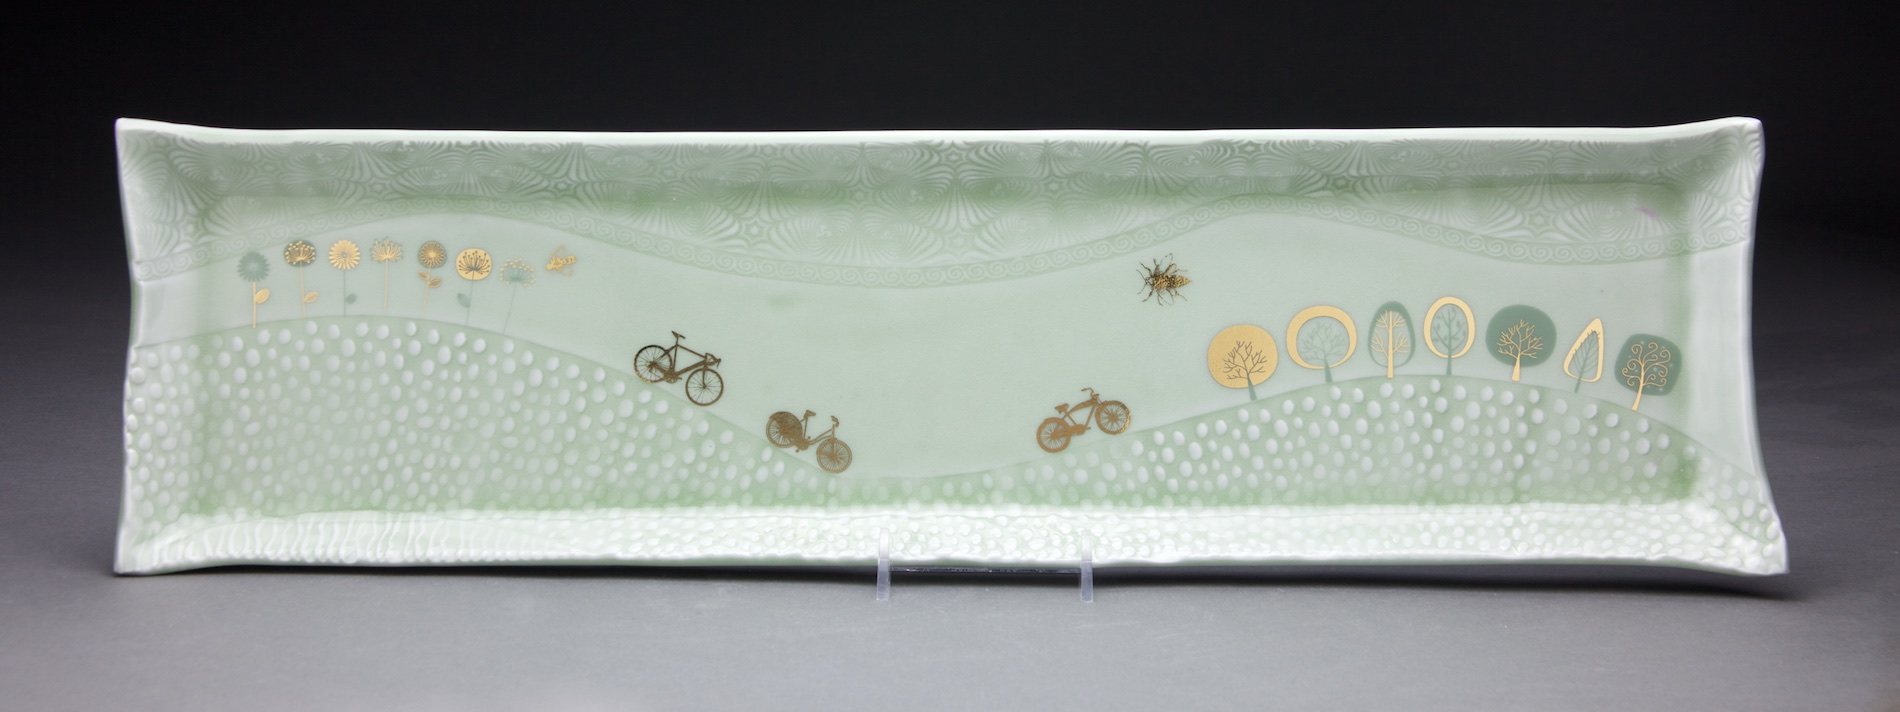 7x22 in. light sage glaze with gold decals